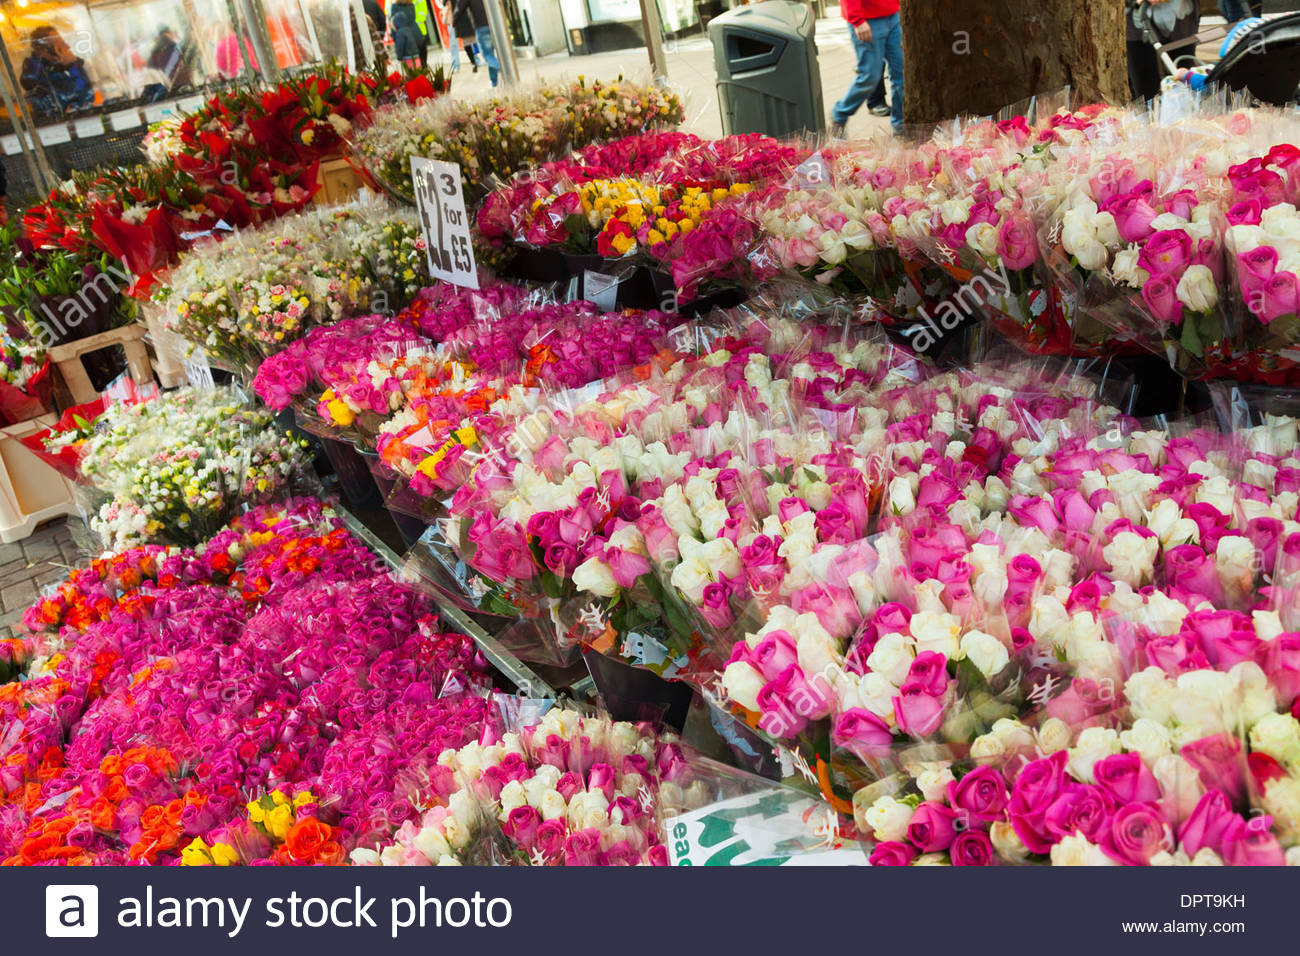 Colourful cut flowers market stall. - Stock Image